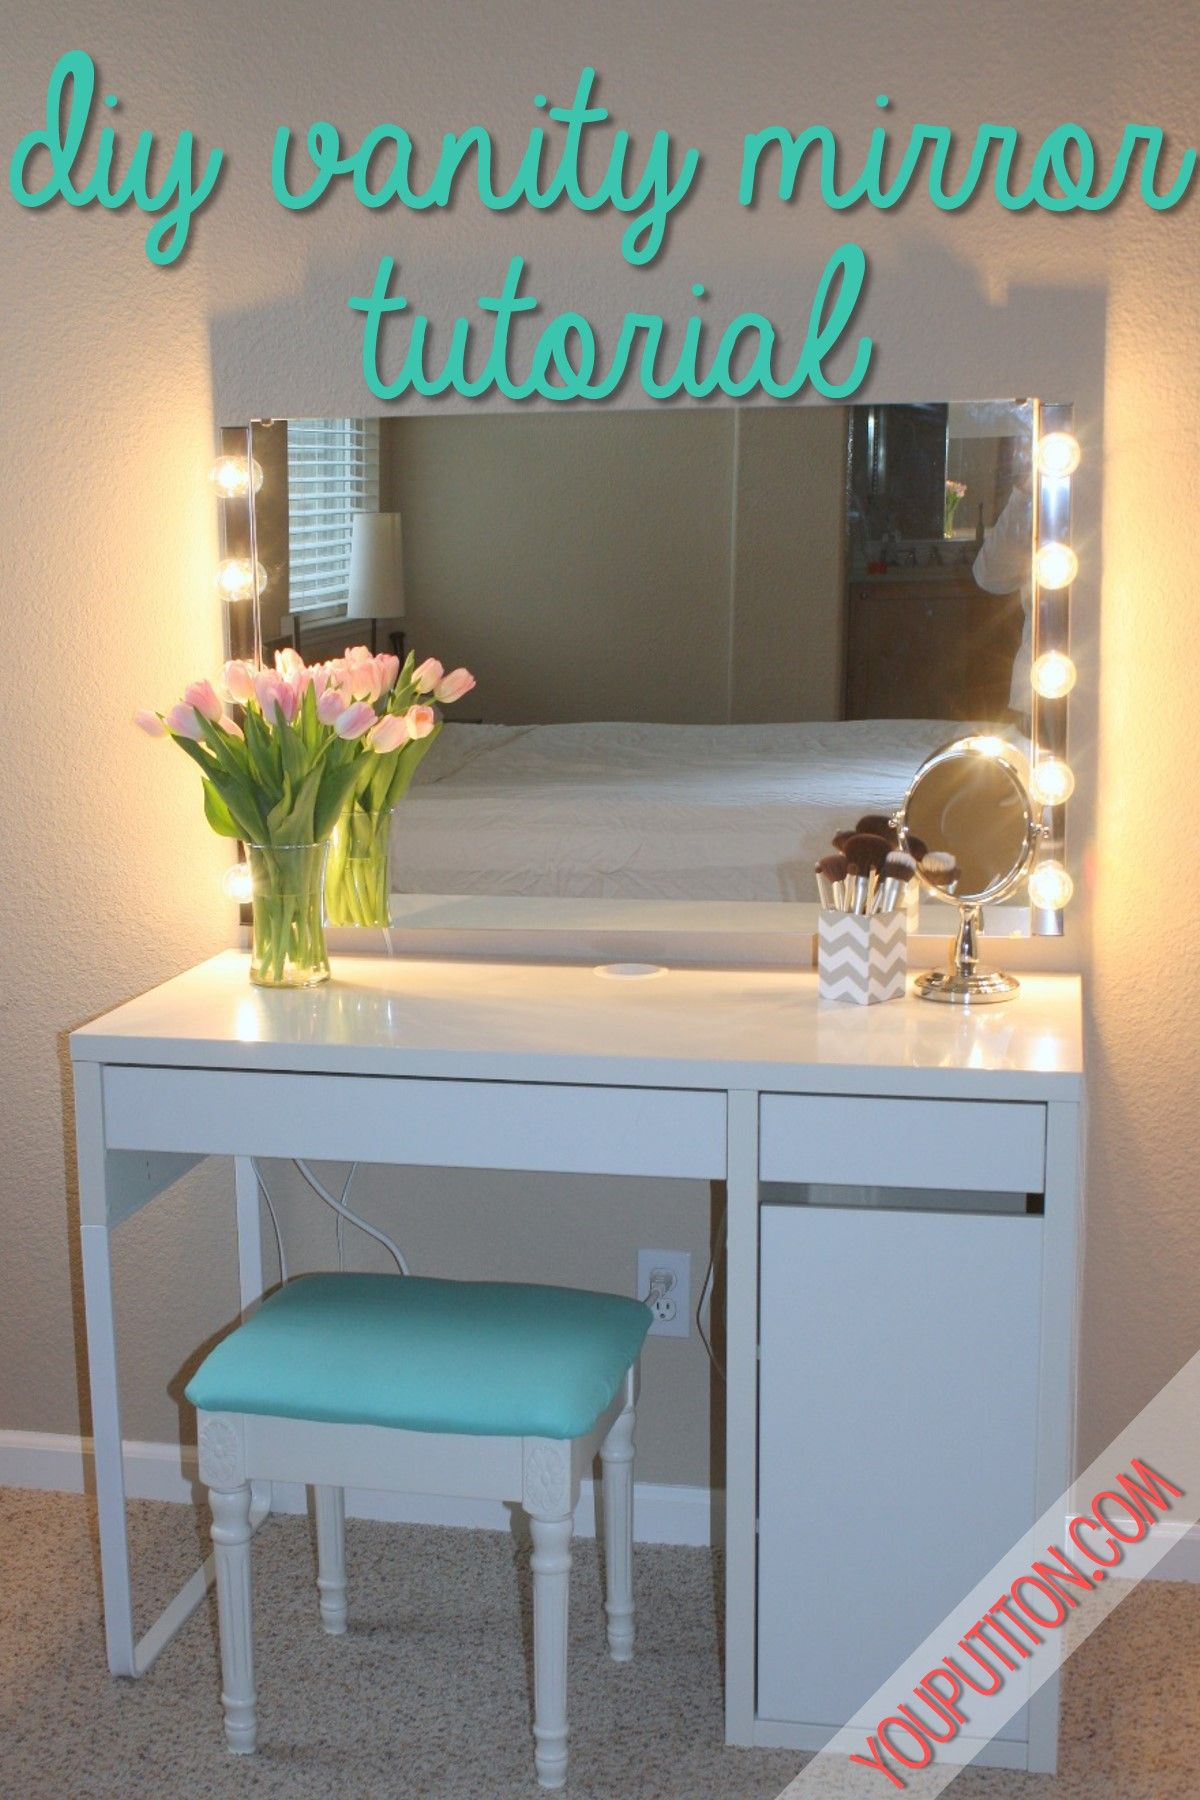 Prop Up 5 Walmart Mirror With Lamps Around Paint A Cheap Desk White Get